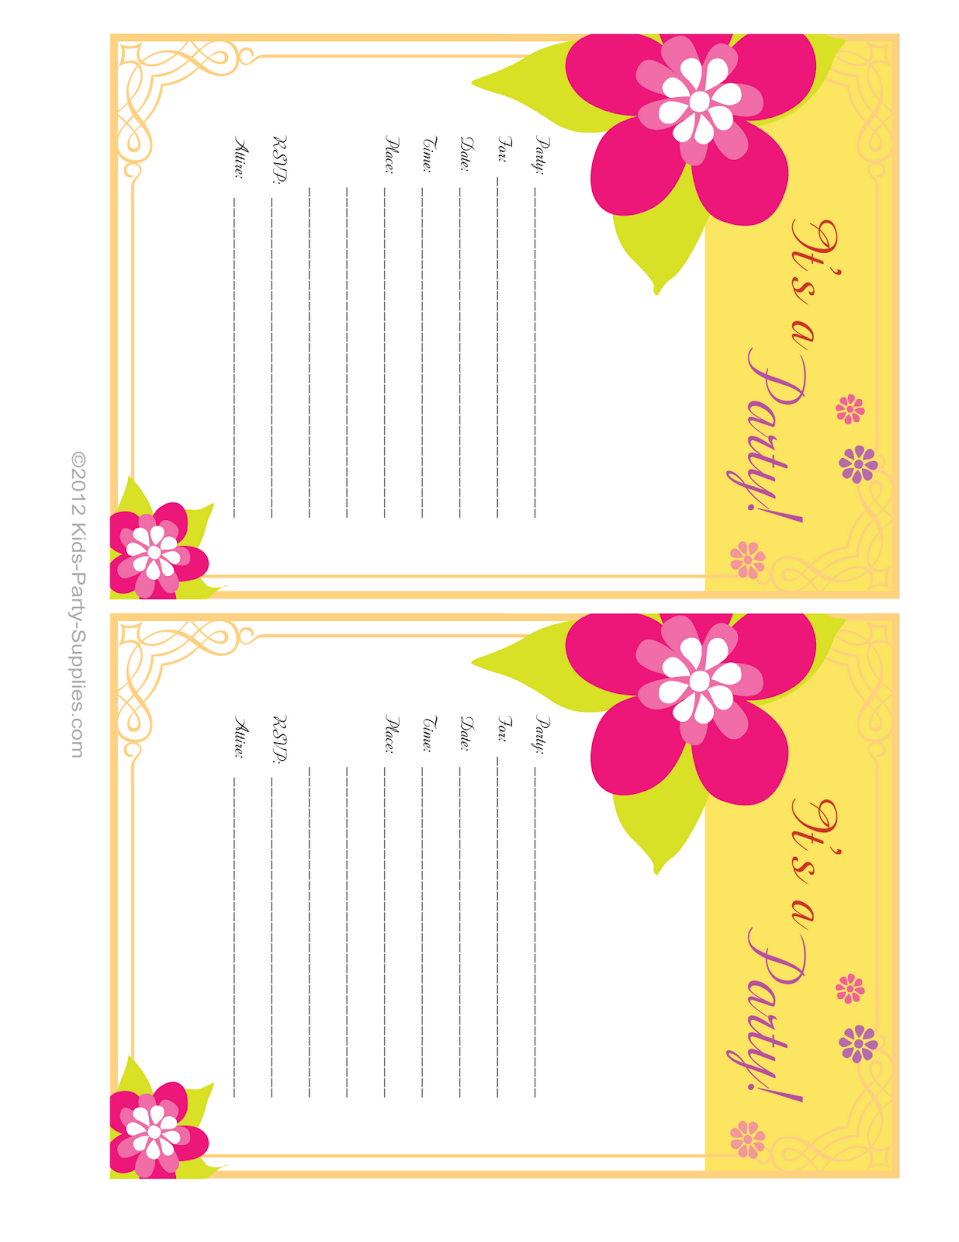 Hawaiian Party Invitations Free Printable Pool Party Pinterest - Birthday party invitation uk